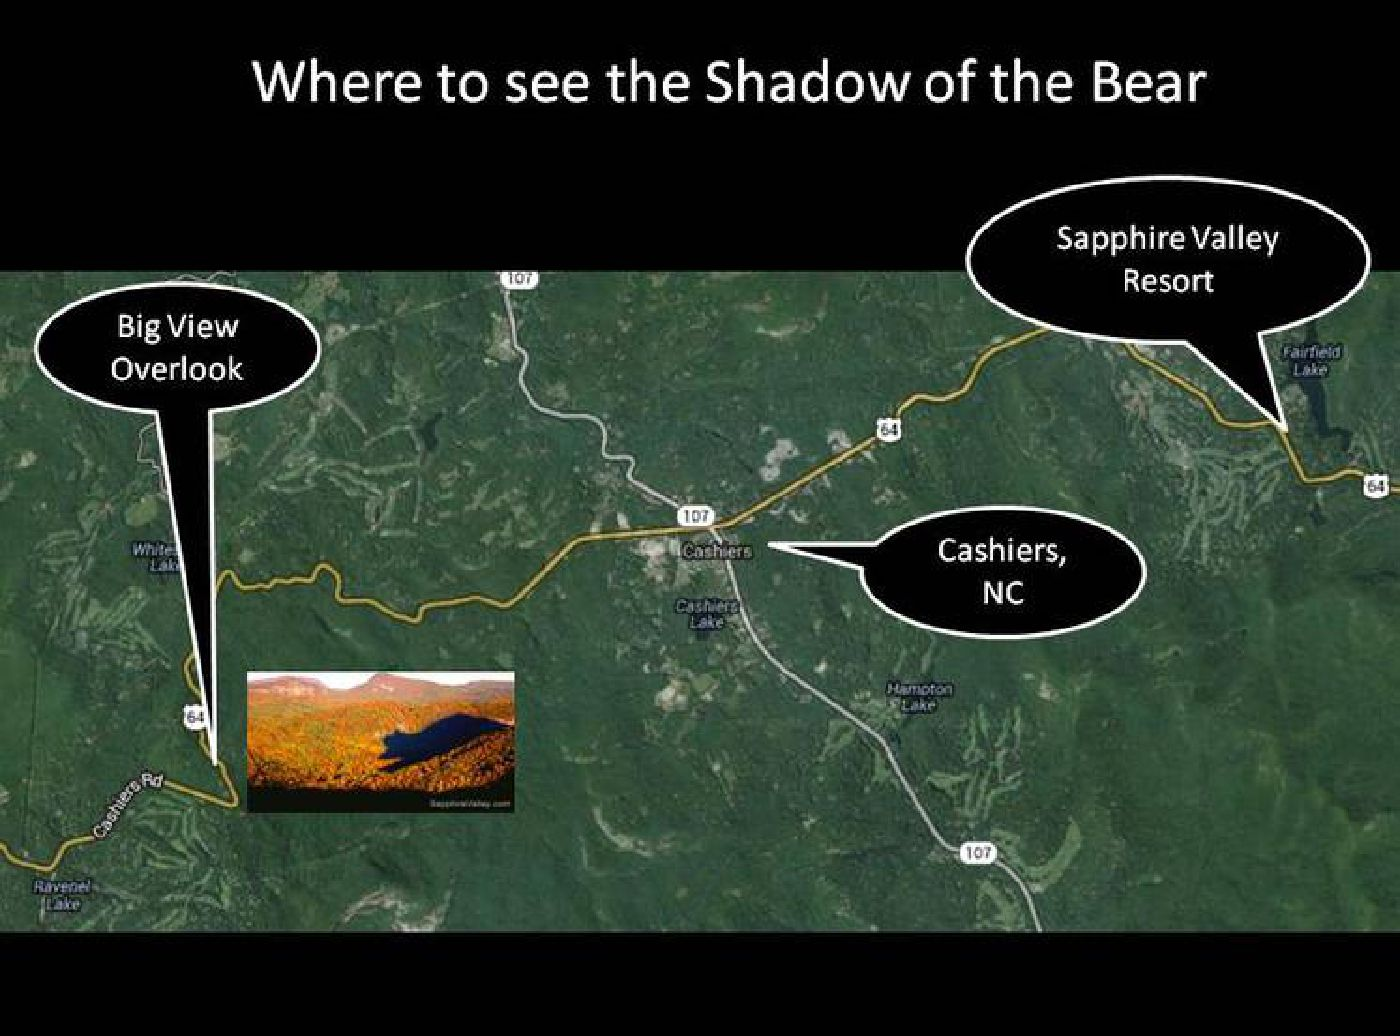 shadow of the bear, , Blue Ridge Mountain NC Vacation Cabin Rentals, Cashiers NC Smoky Mountains